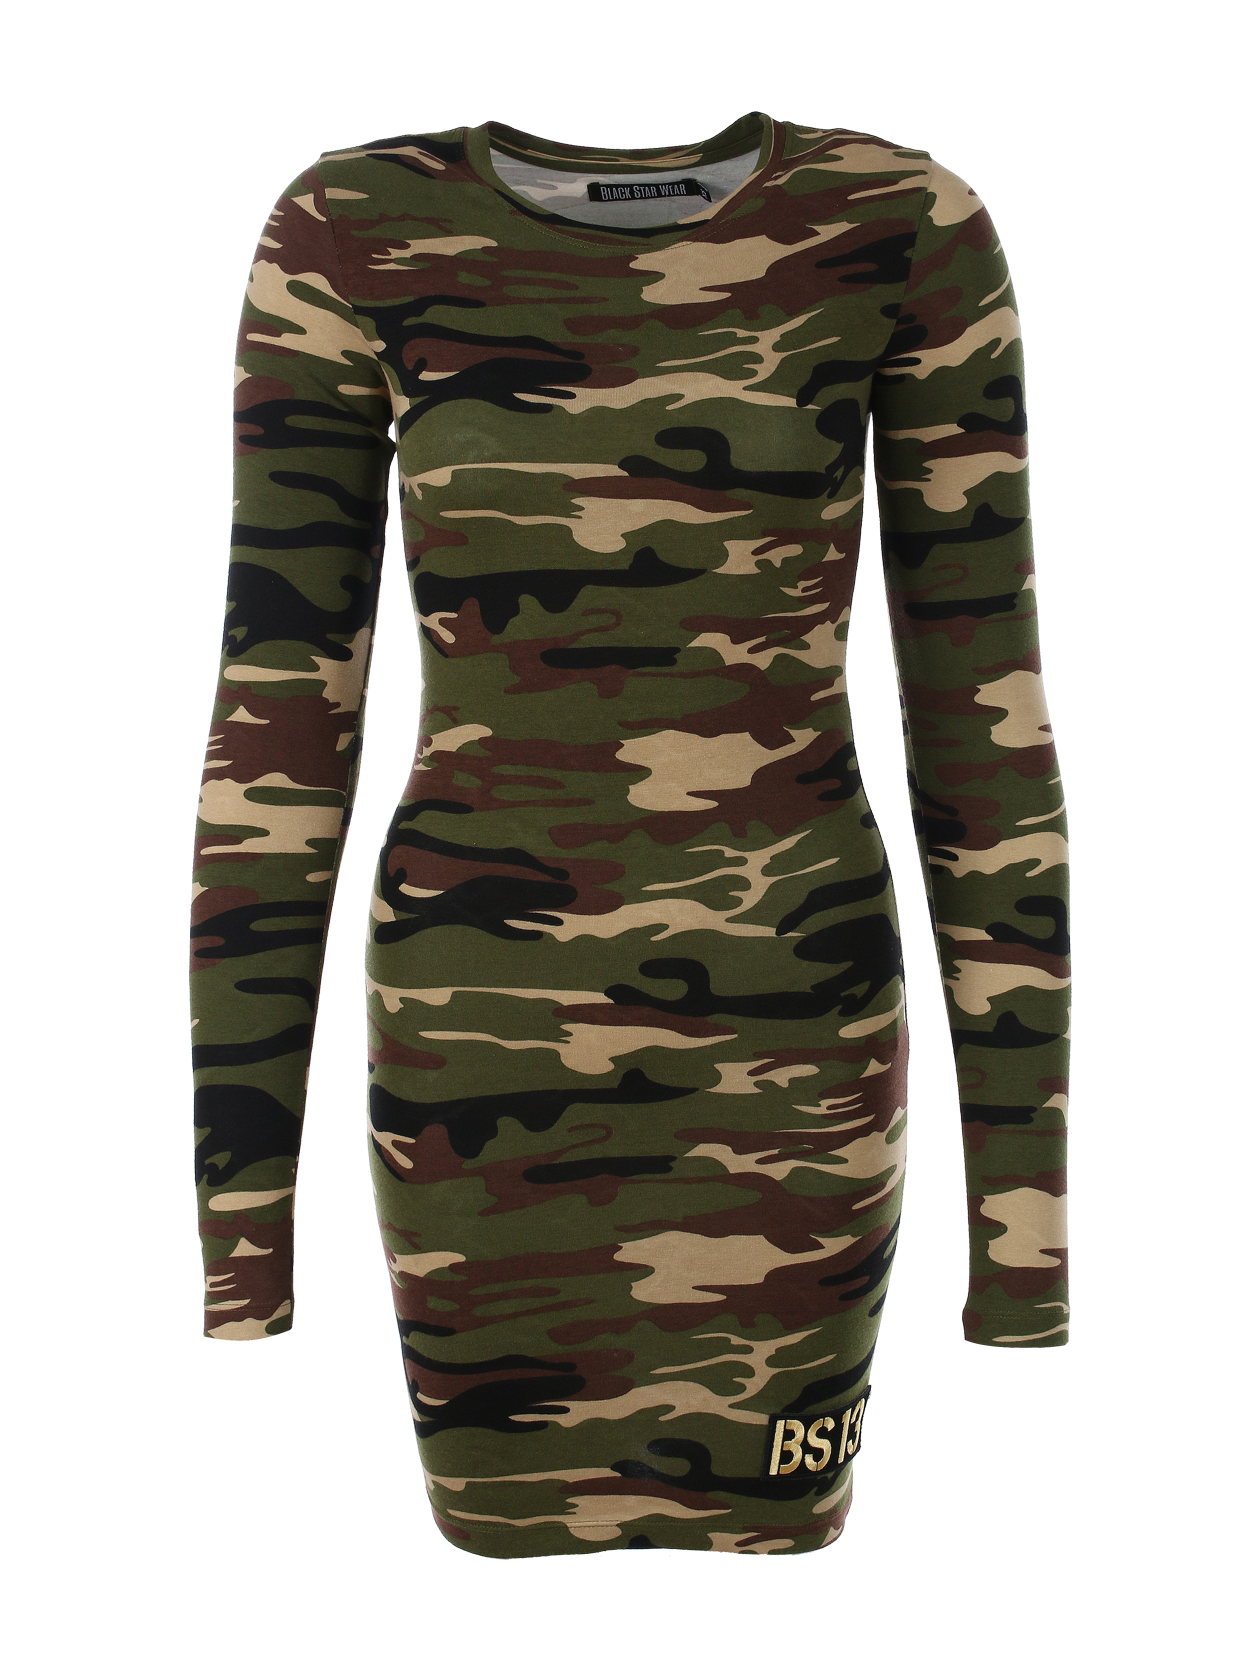 Womens dress Camo BSWomens dress in camouflage by Black Star Wear. Mostly cotton, o-neck, long sleeves, knee length, slim fit. Small patch BS13 on the front.<br><br>size: L<br>color: Camouflage<br>gender: female